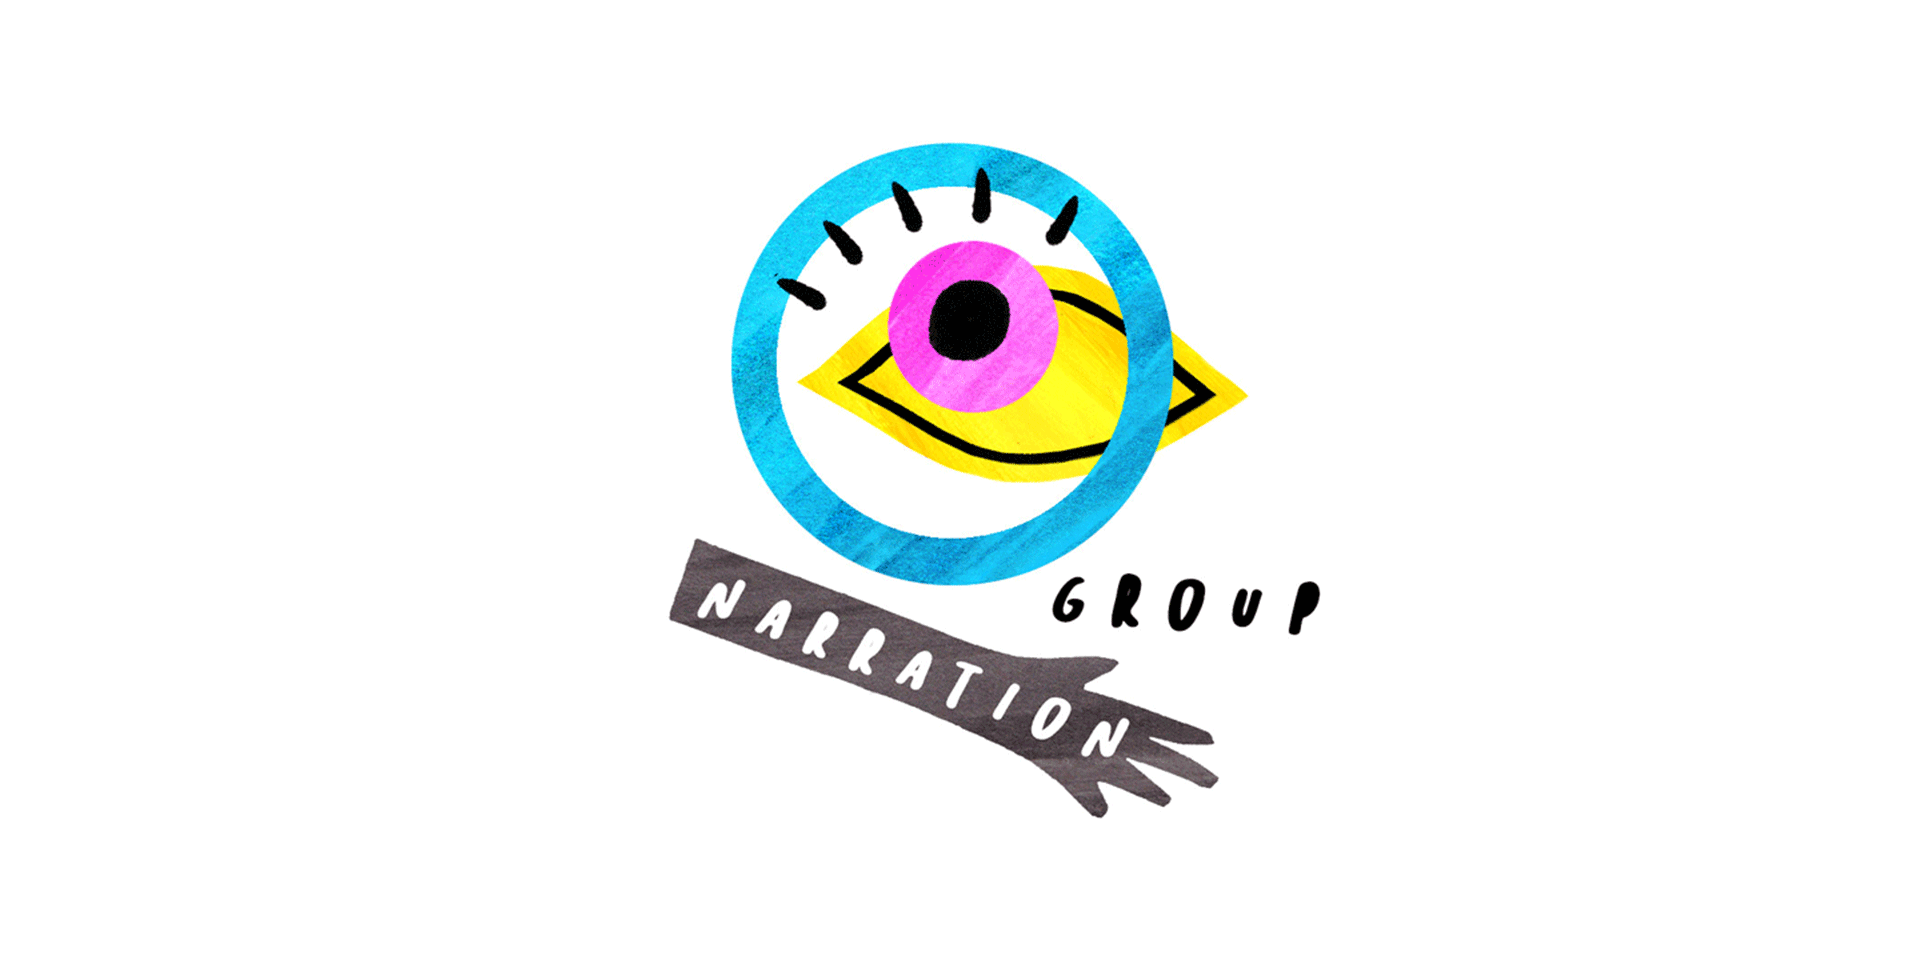 Narration Group. Logo including a circle, an eye and a hand